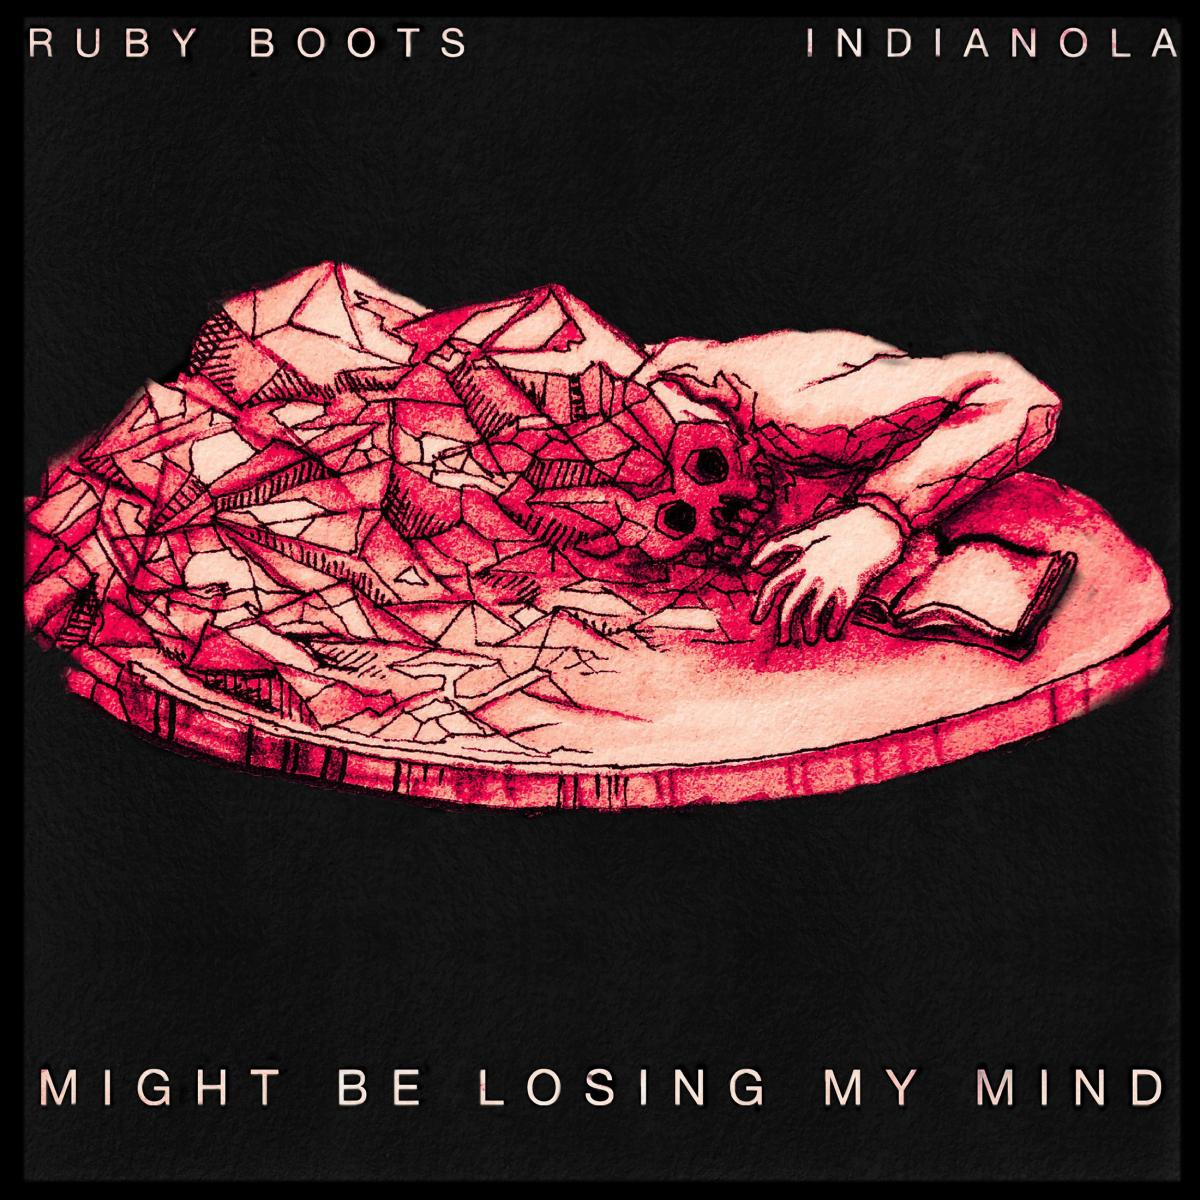 Ruby Boots Indianola Might Be Losing My Mind Single Art